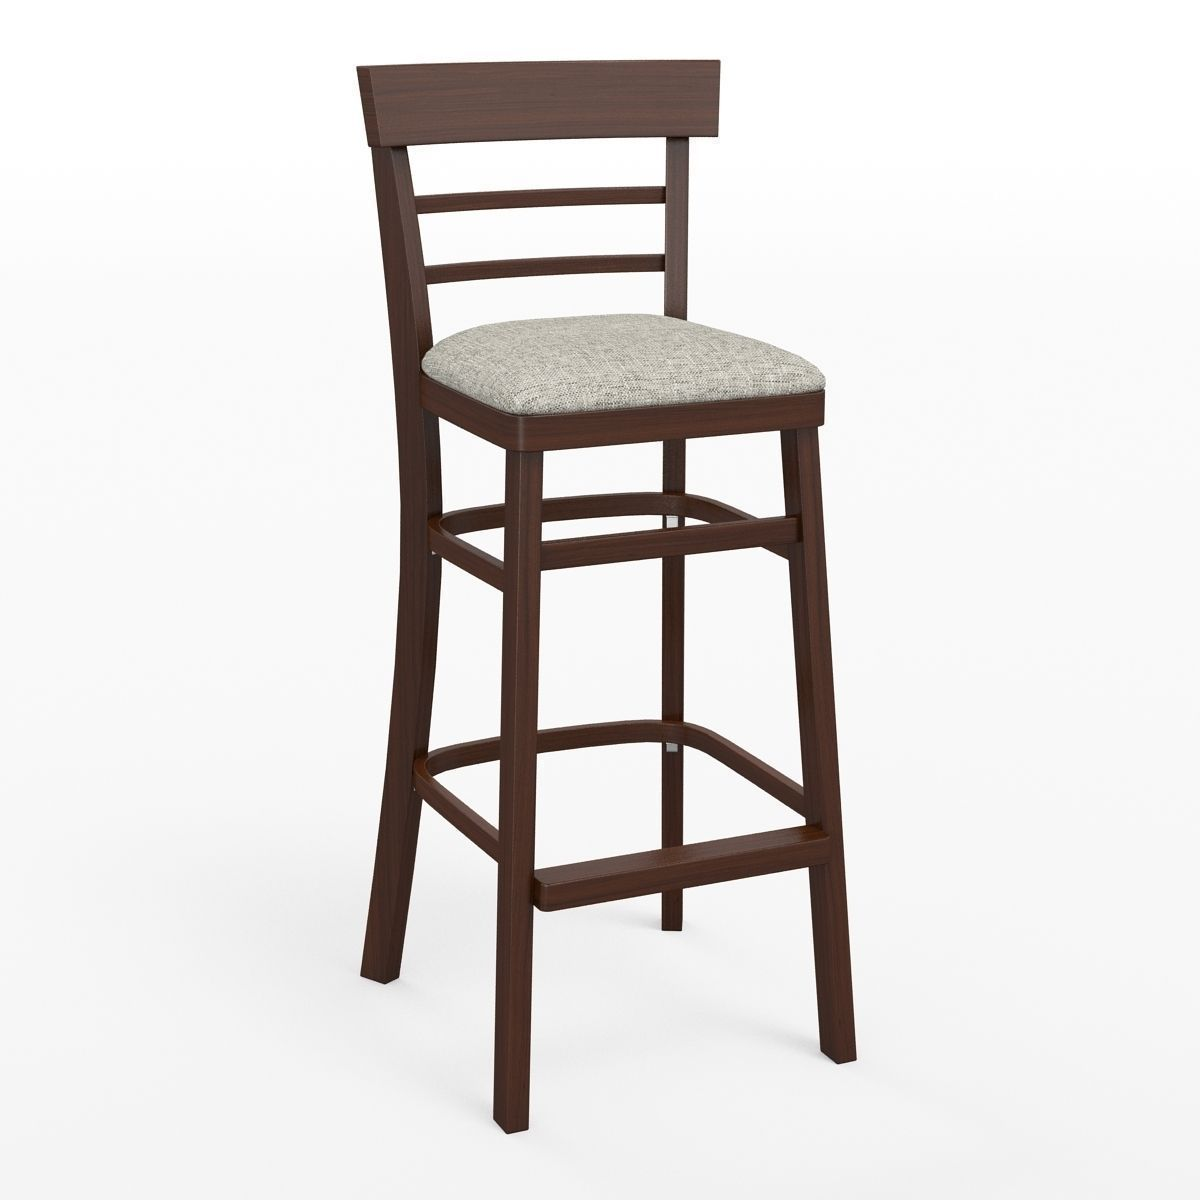 Wooden Bar Stool Buy Wooden Bar Stools Online At Best  : wooden bar stool 3d model max obj fbx from marijuanaplanet.us size 1200 x 1200 jpeg 58kB